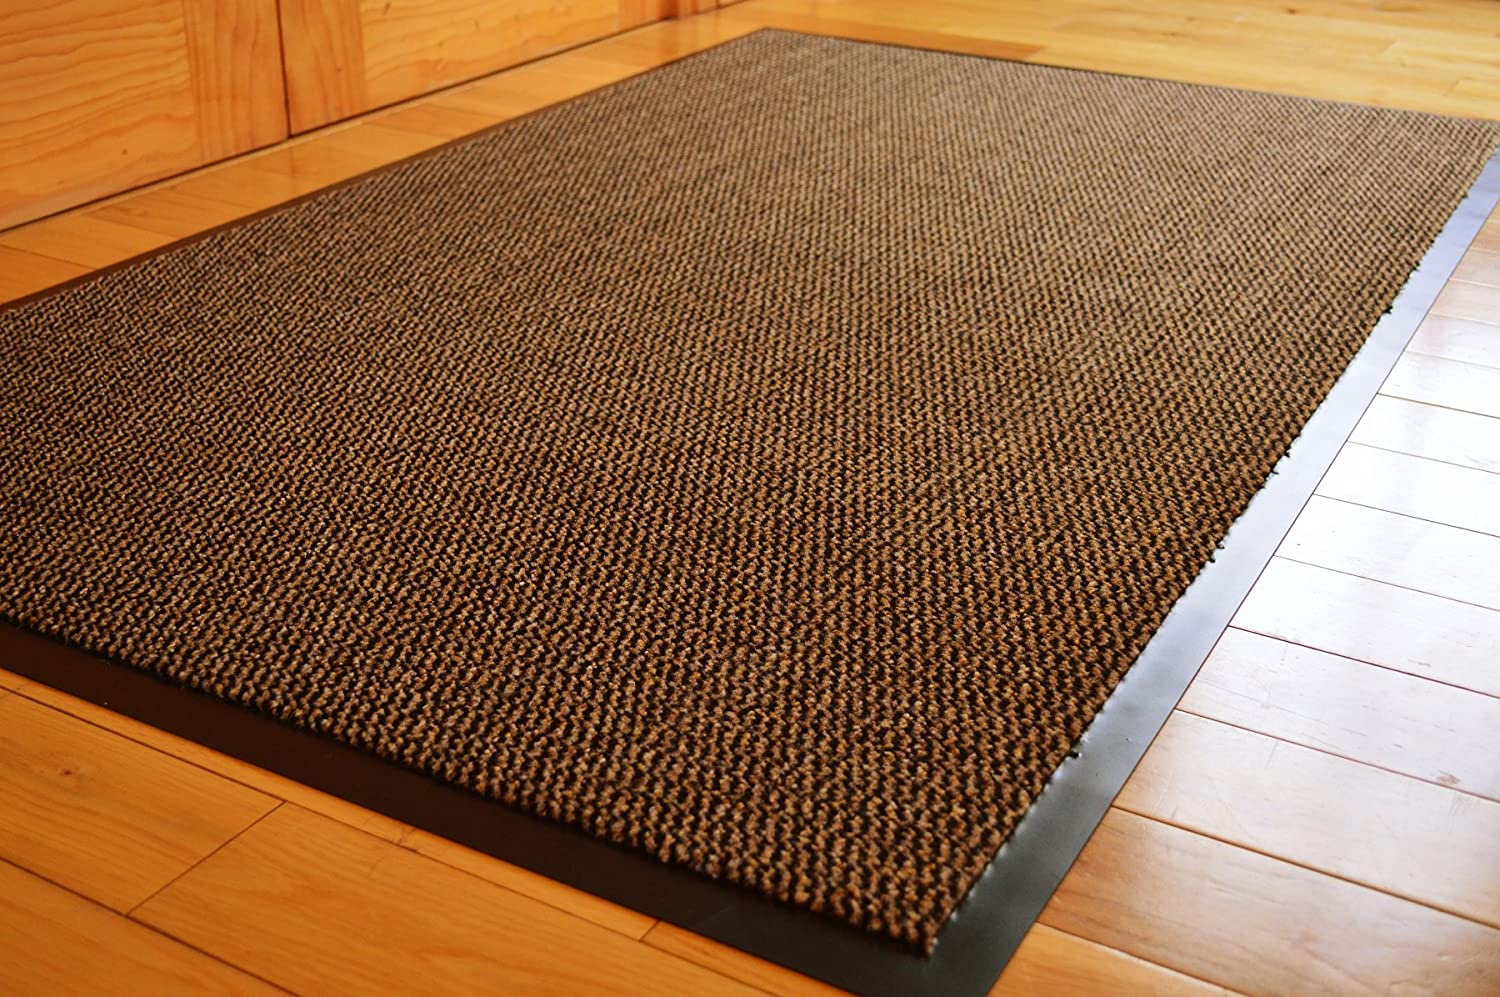 AHOC BARRIER MAT LARGE BROWN/BLACK DOOR MAT RUBBER BACKED MEDIUM RUNNER BARRIER MATS RUG PVC EDGED KITCHEN MAT(90 X 150 CM) Others